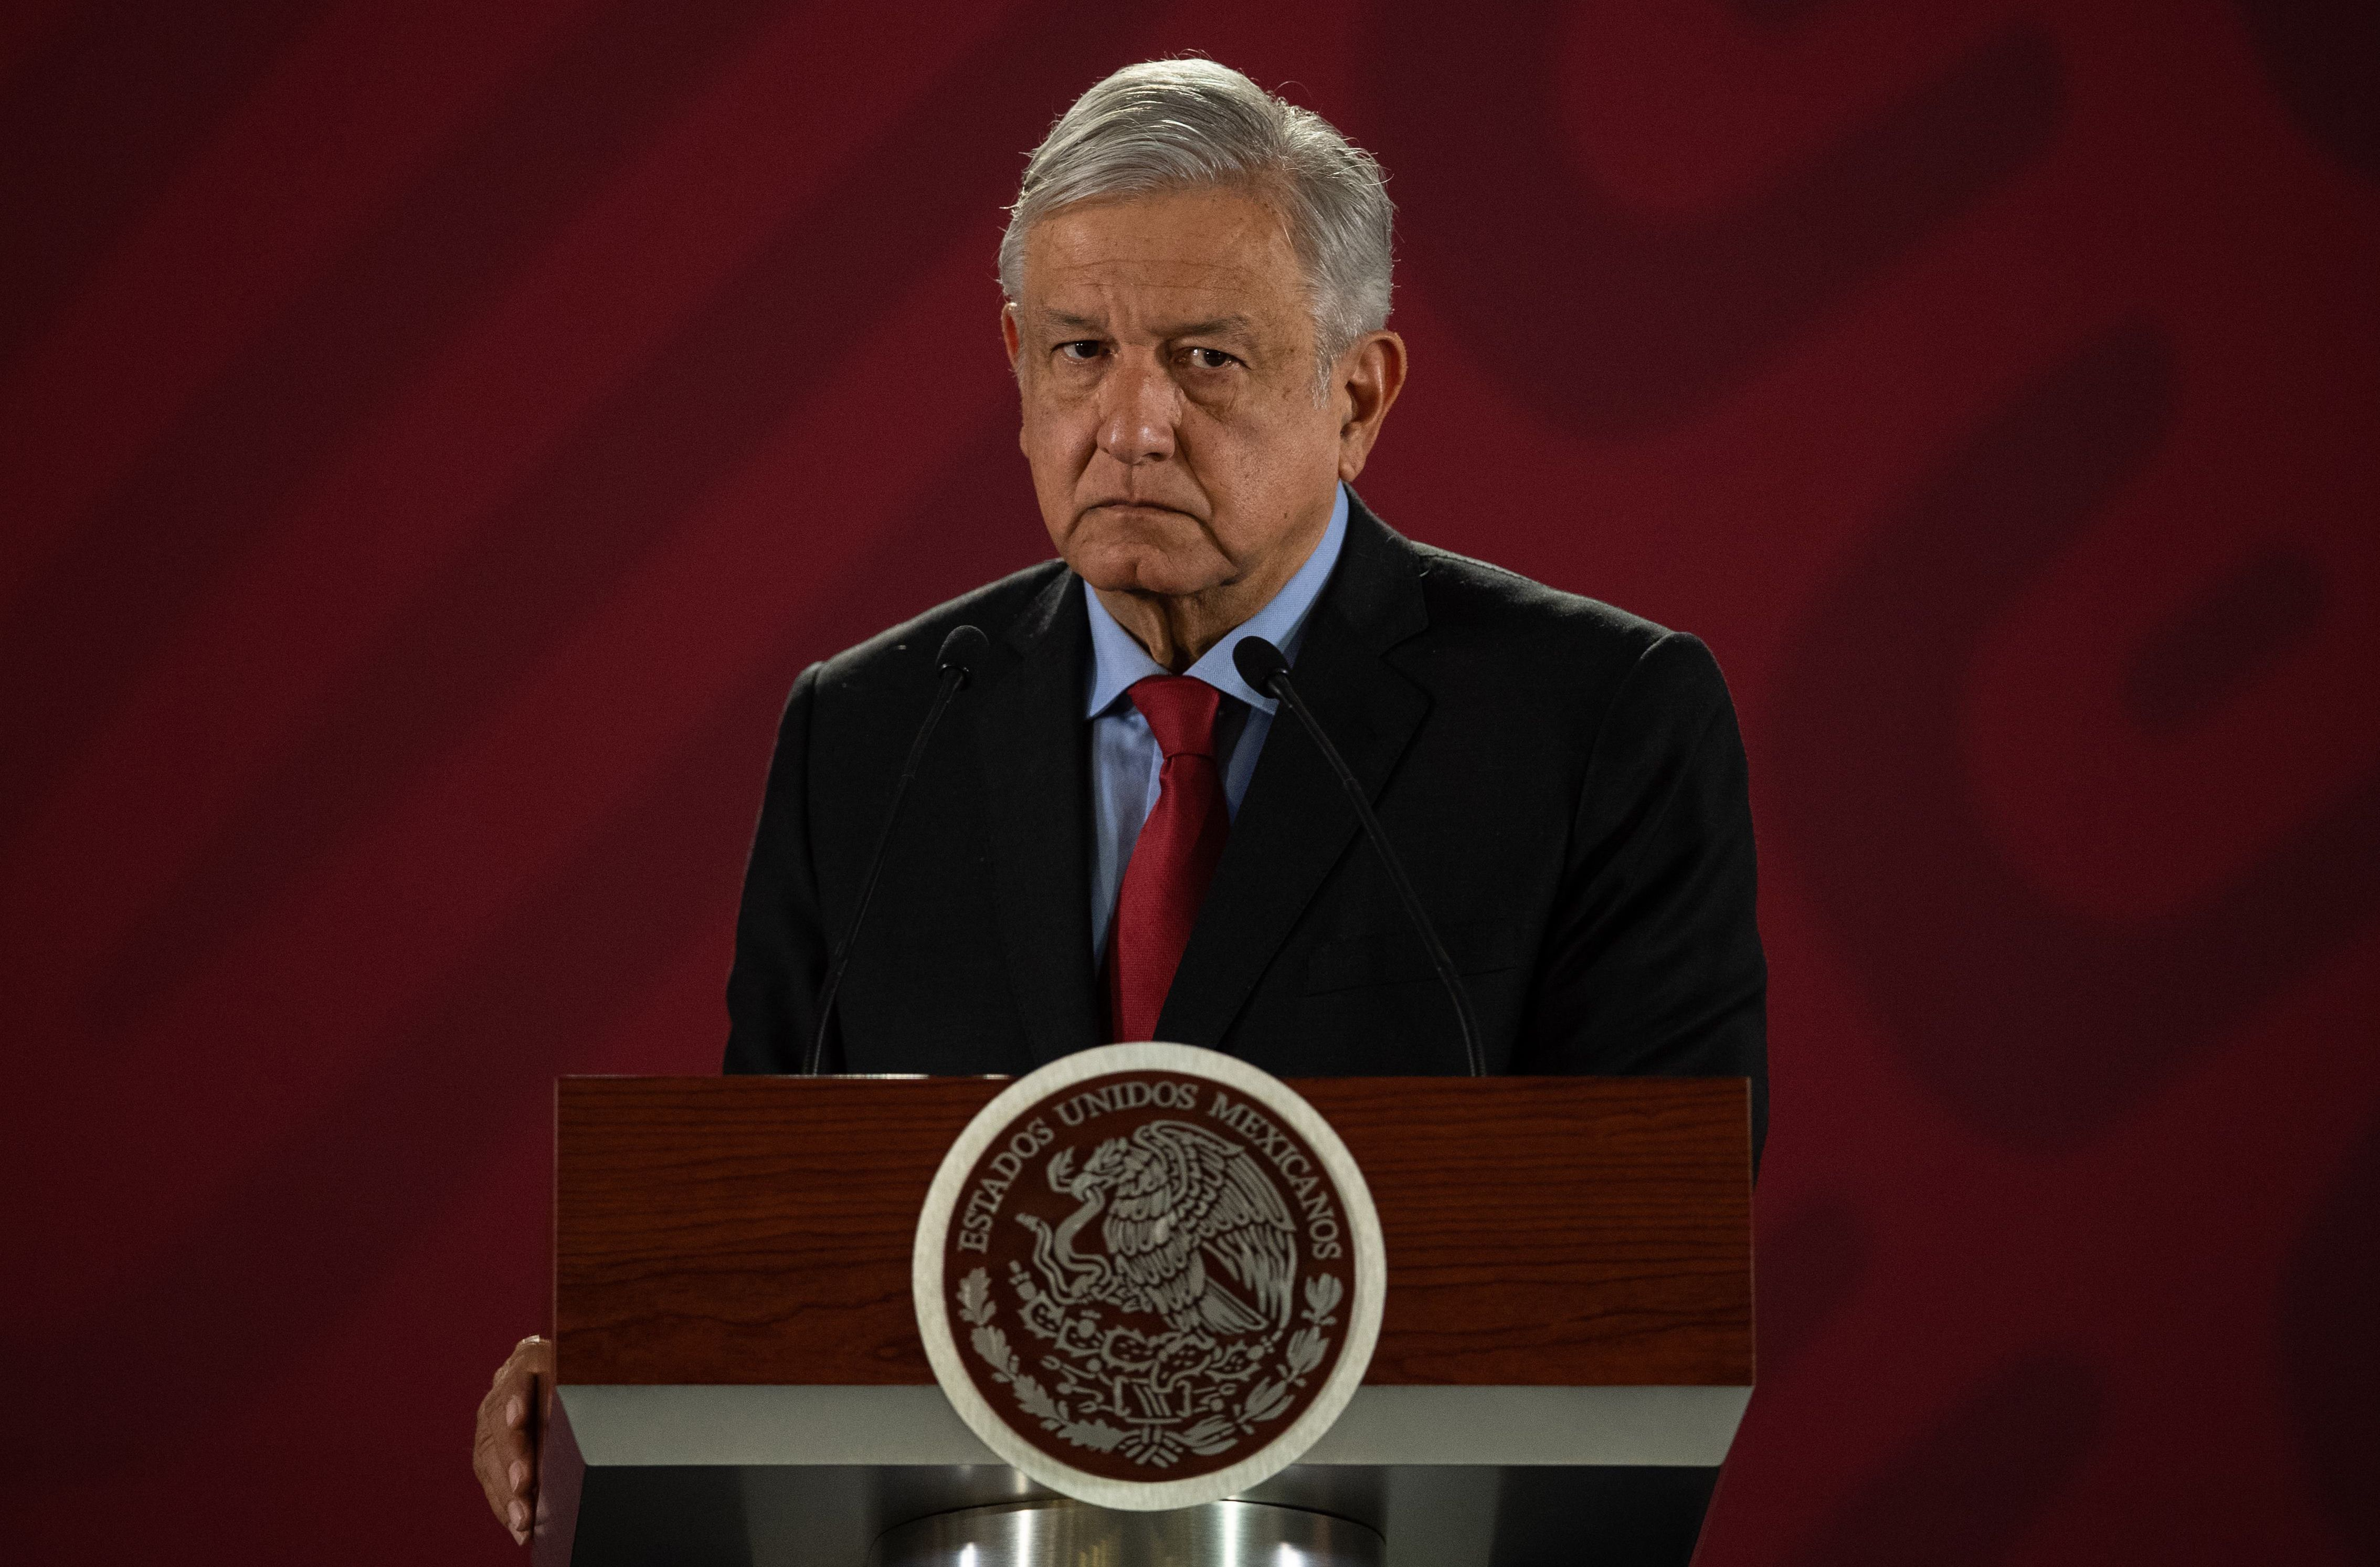 Mexican President Andres Manuel Lopez Obrador (AMLO) speaks during his daily morning press conference at the National Palace in Mexico City on March 26, 2019